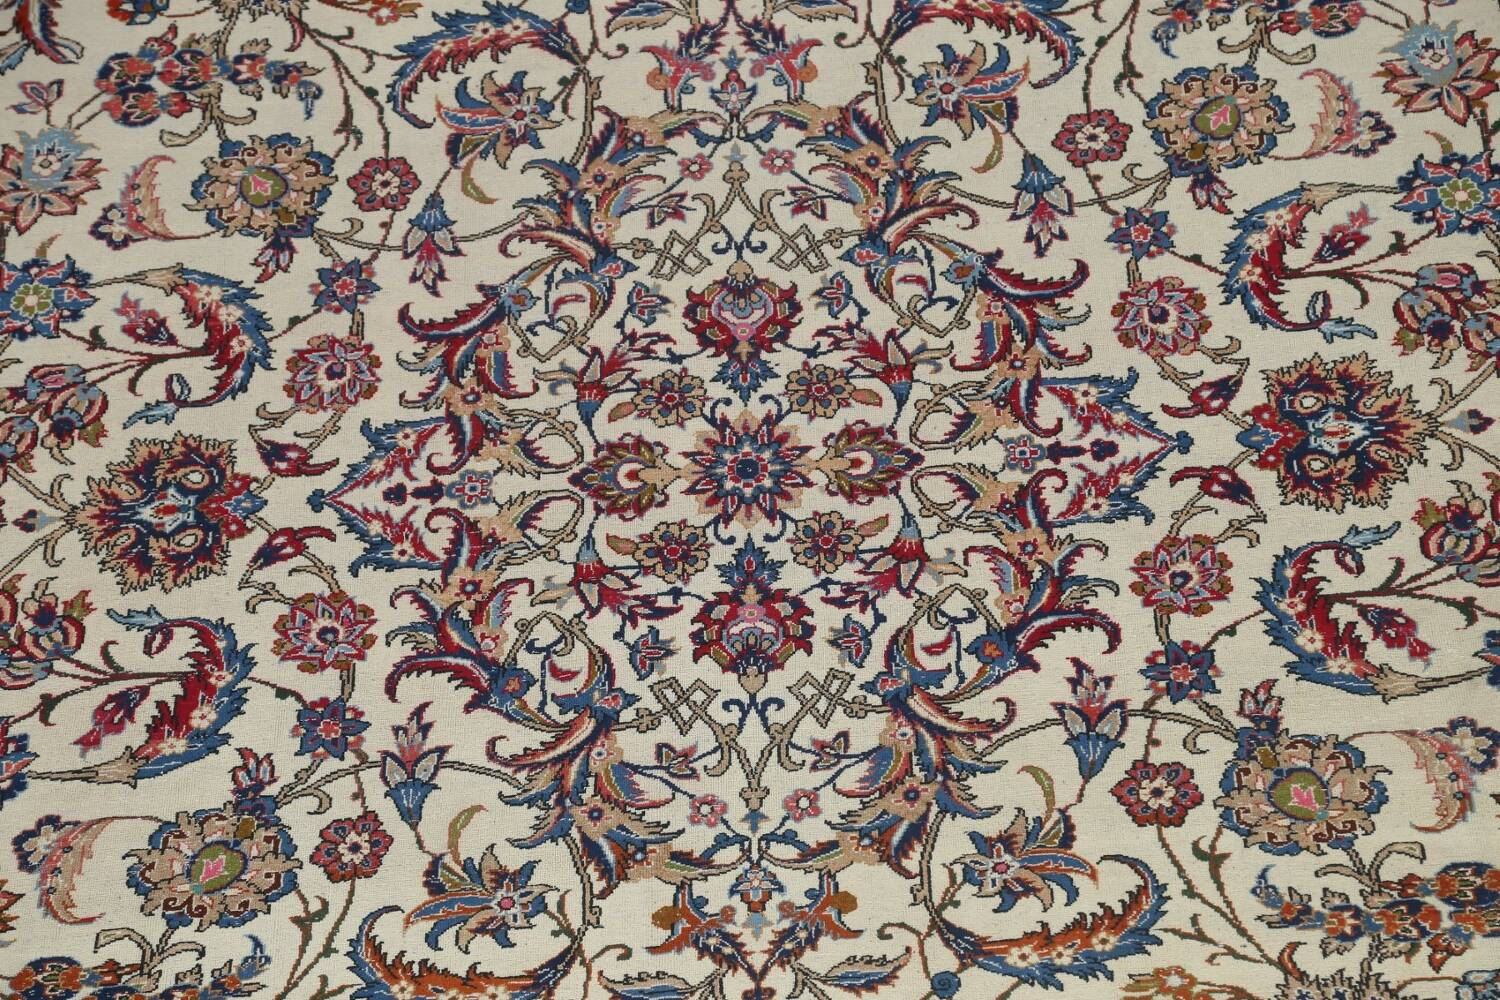 Antique Wool Oversized Isfahan Persian Rug 10x17 image 4